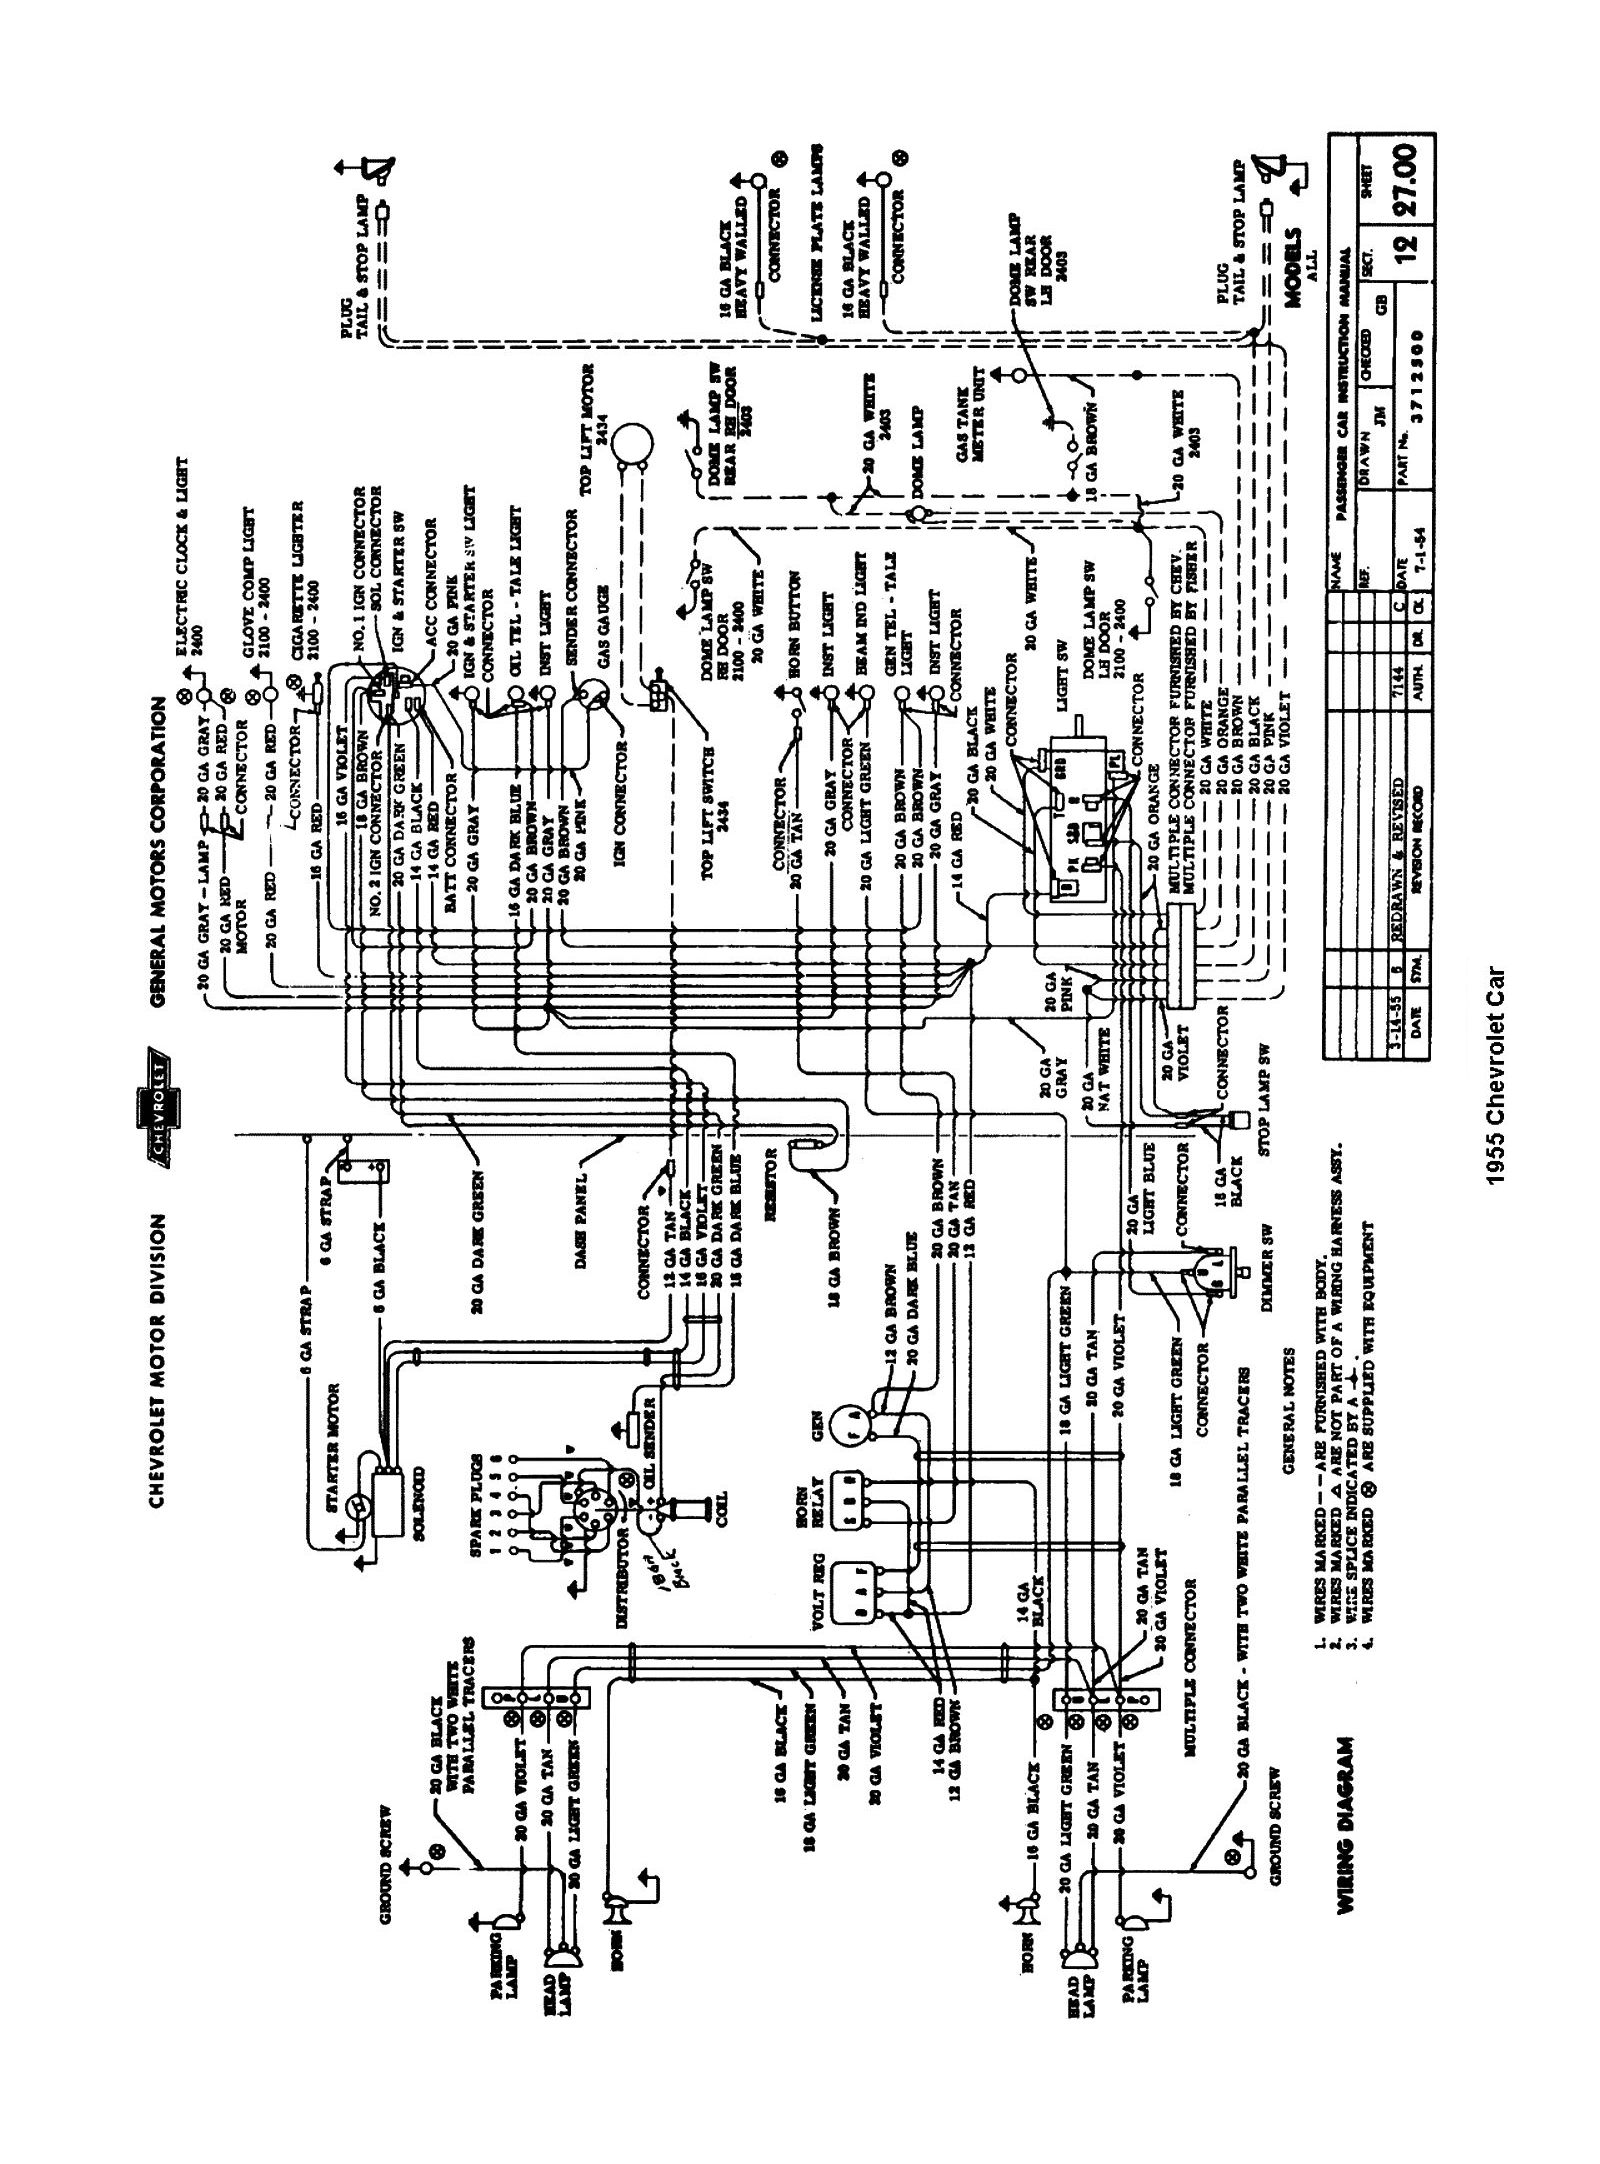 chevy wiring diagrams rh chevy oldcarmanualproject com 70 Chevy Truck Wiring Diagram 58 Chevy Truck Wiring Diagram